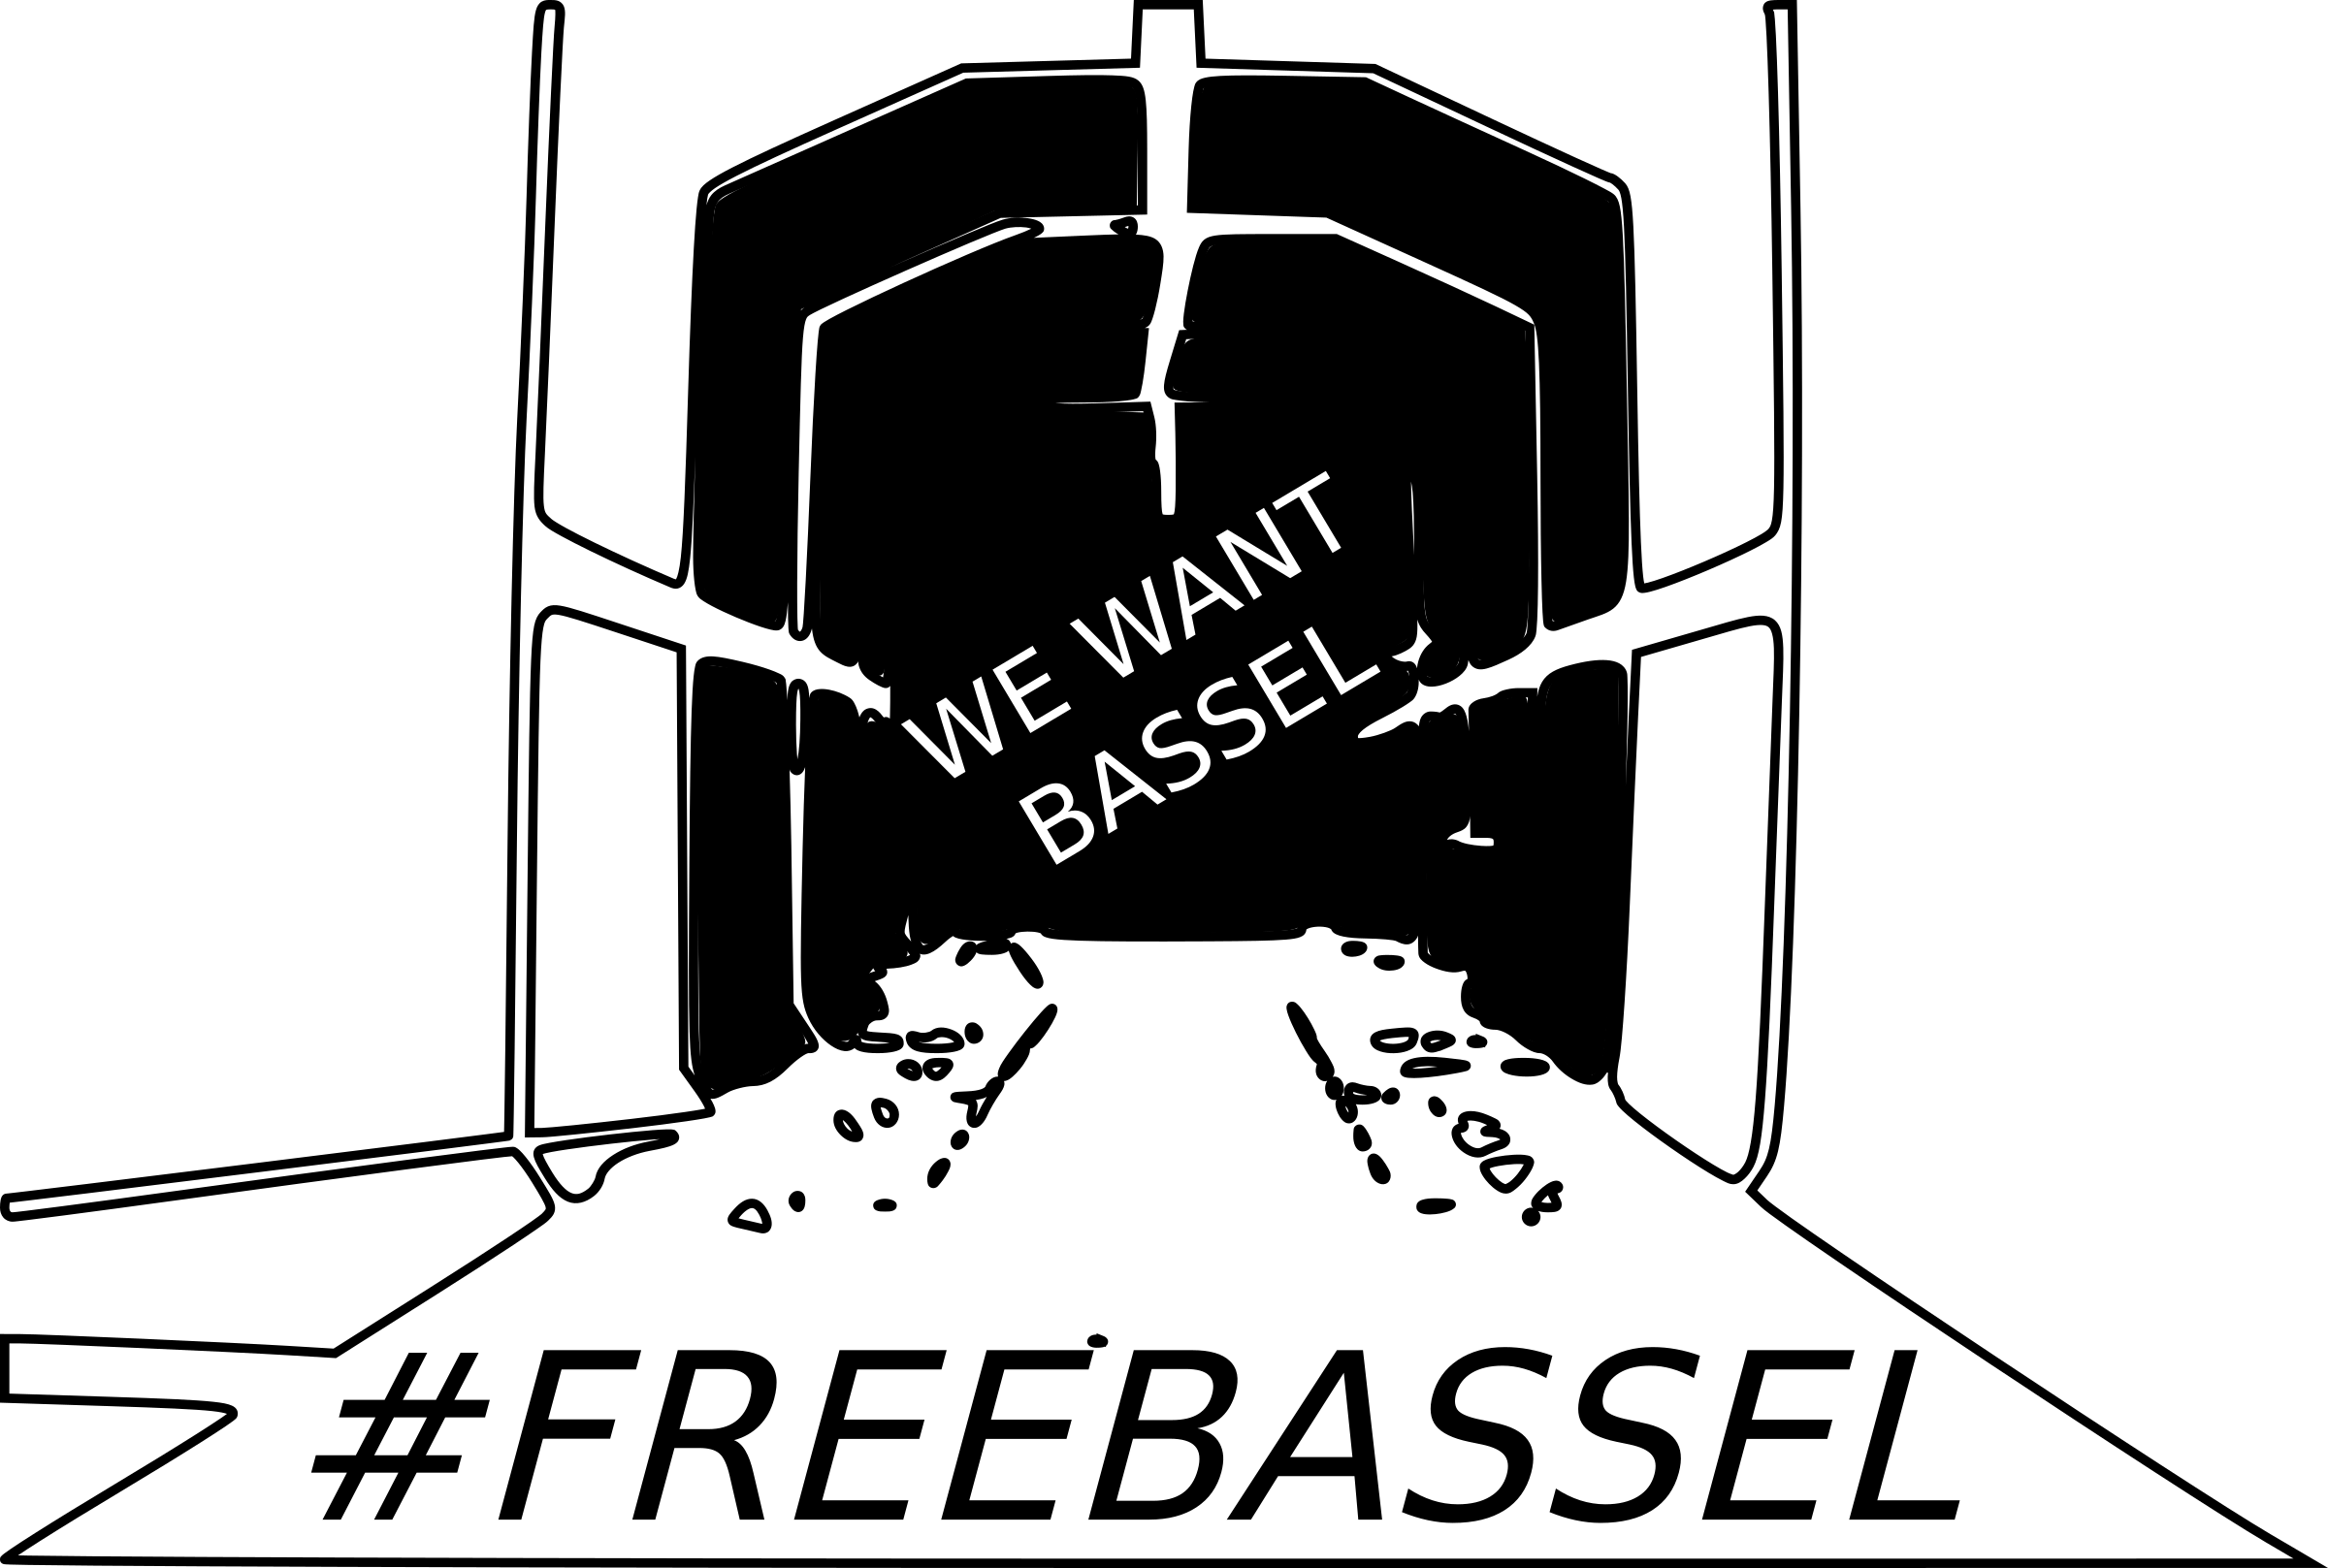 WE WANT BASSEL by hackdorte